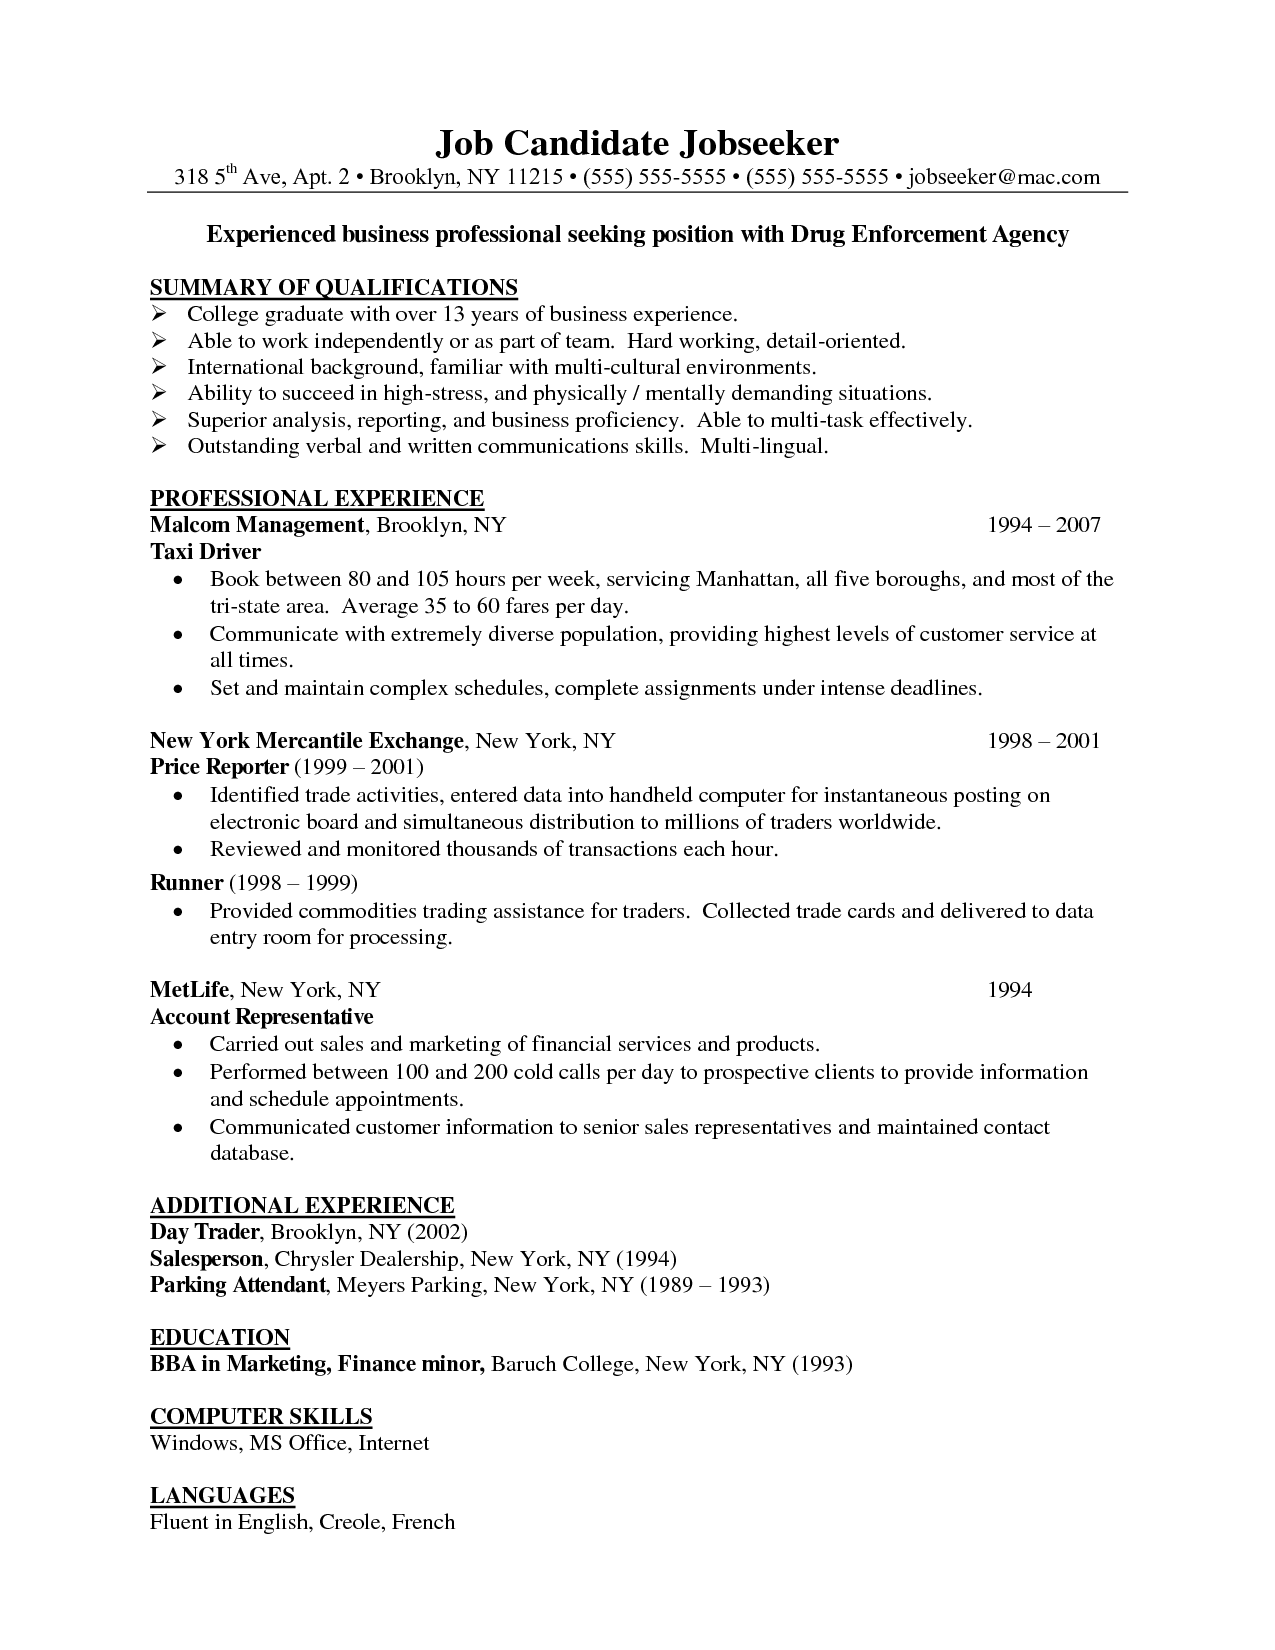 Business Resume Examples Sample Business Resume Template  Sample Resume Center  Pinterest